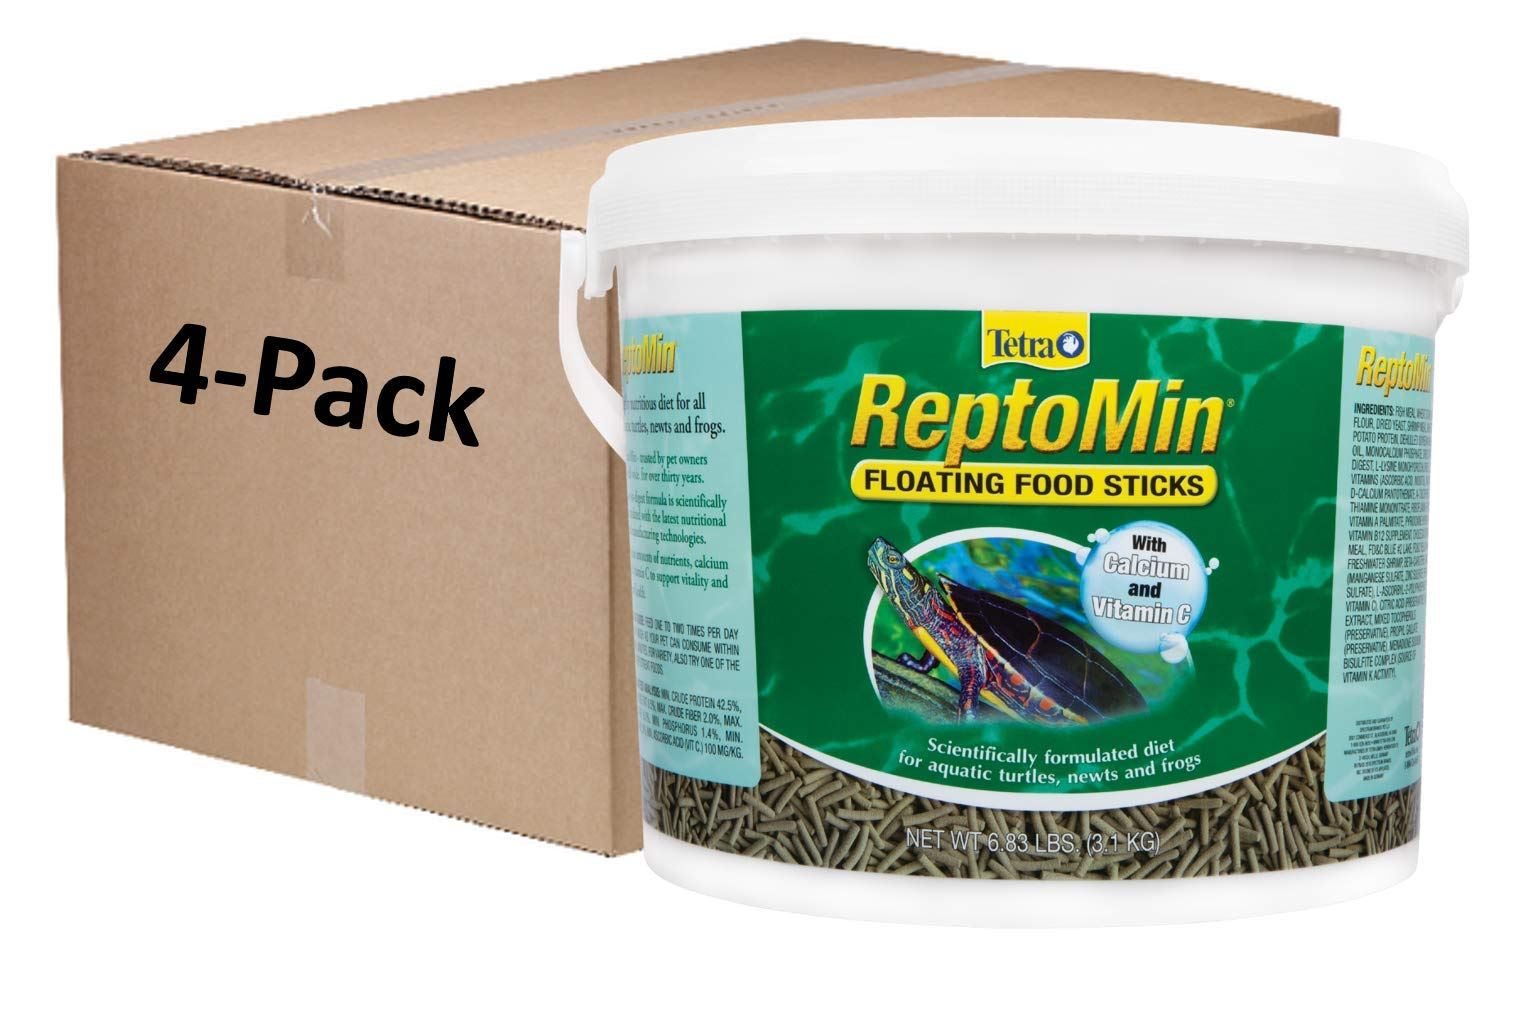 Tetra Reptomin Floating Food Sticks For Reptiles, 27.32 Lbs by Tetra